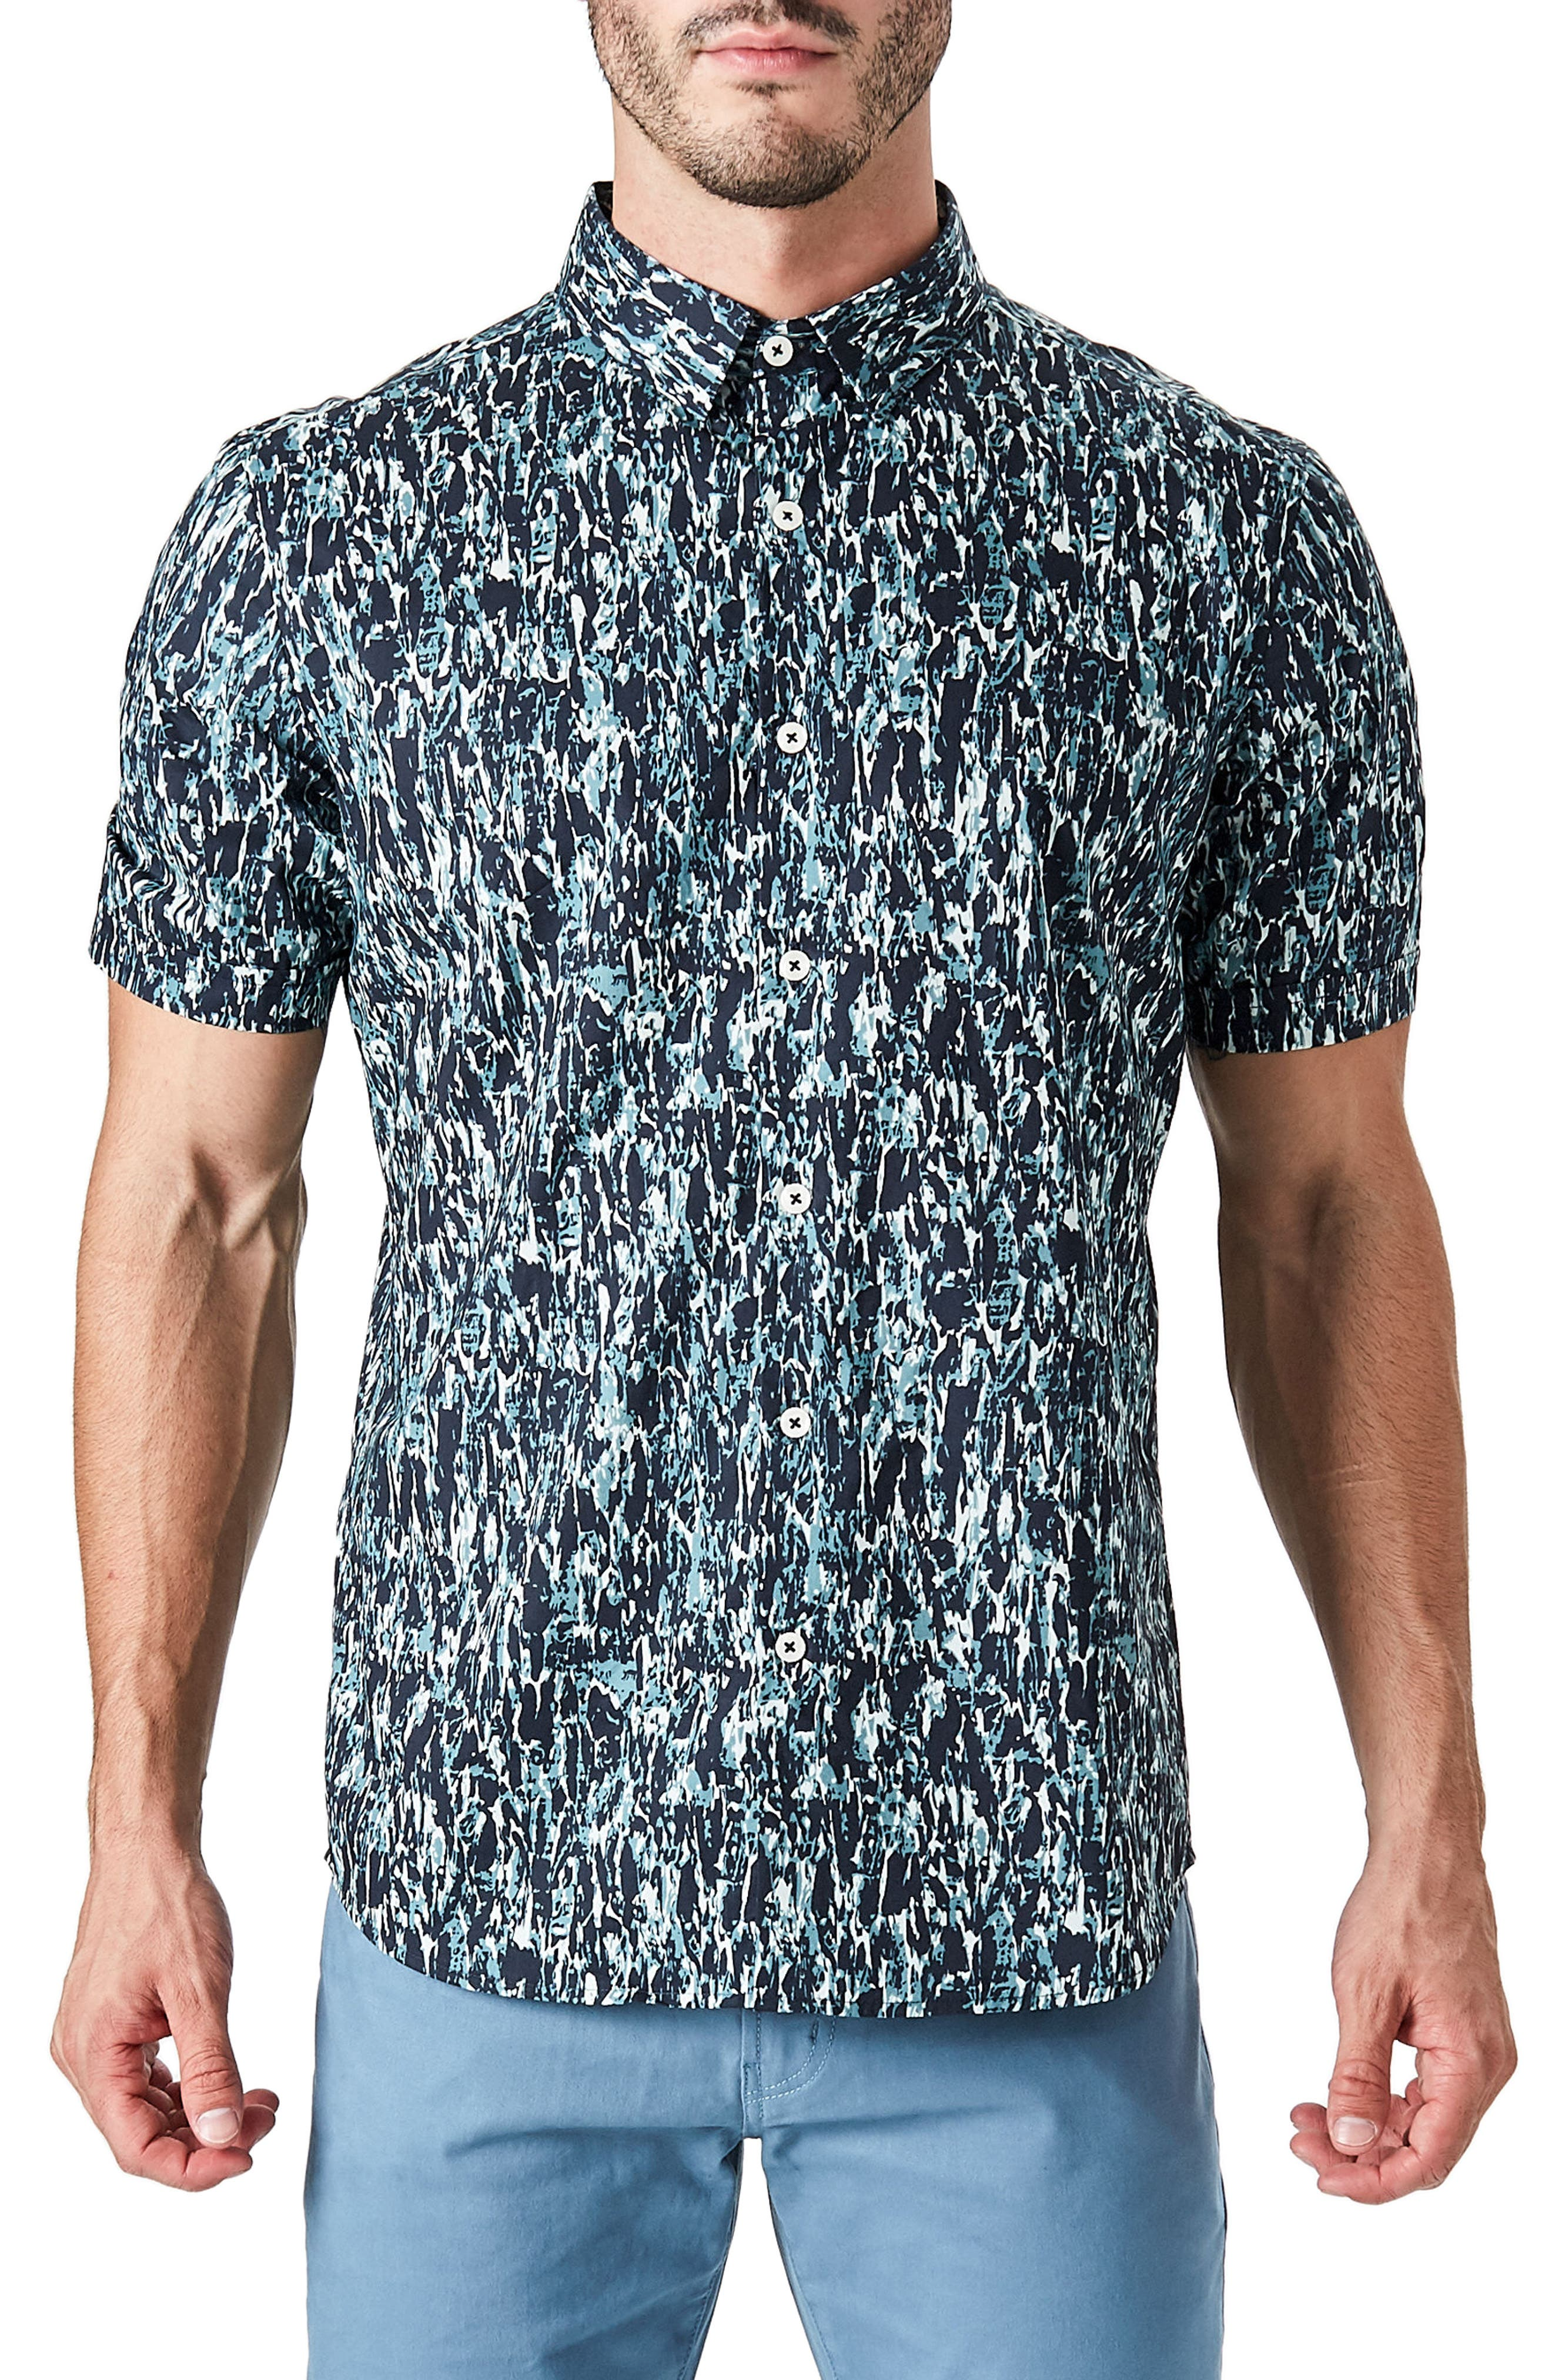 Universal Sound Woven Shirt,                         Main,                         color, Midnight G